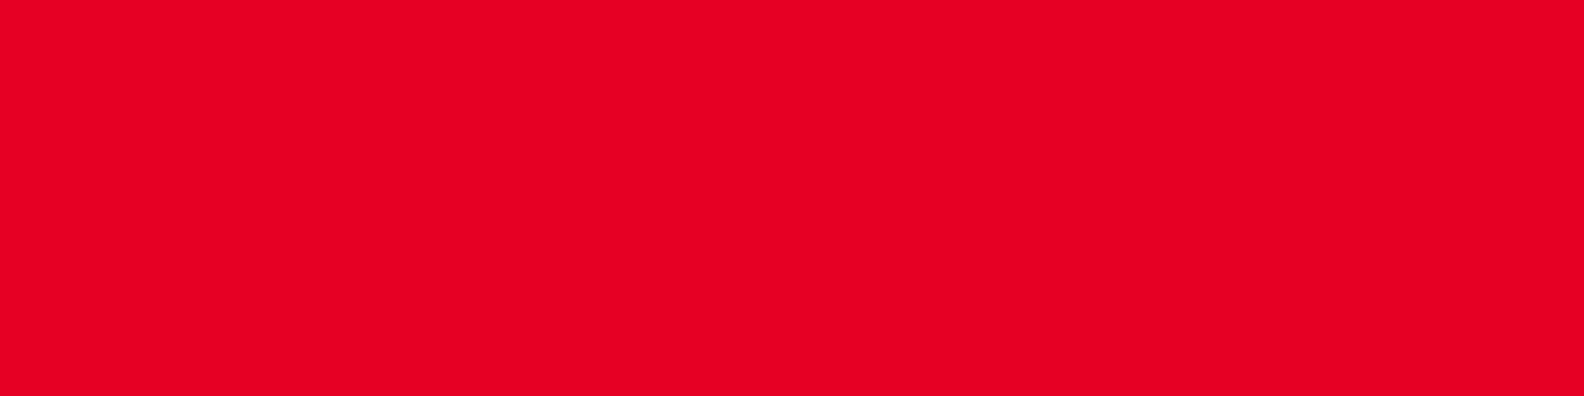 1584x396 Cadmium Red Solid Color Background